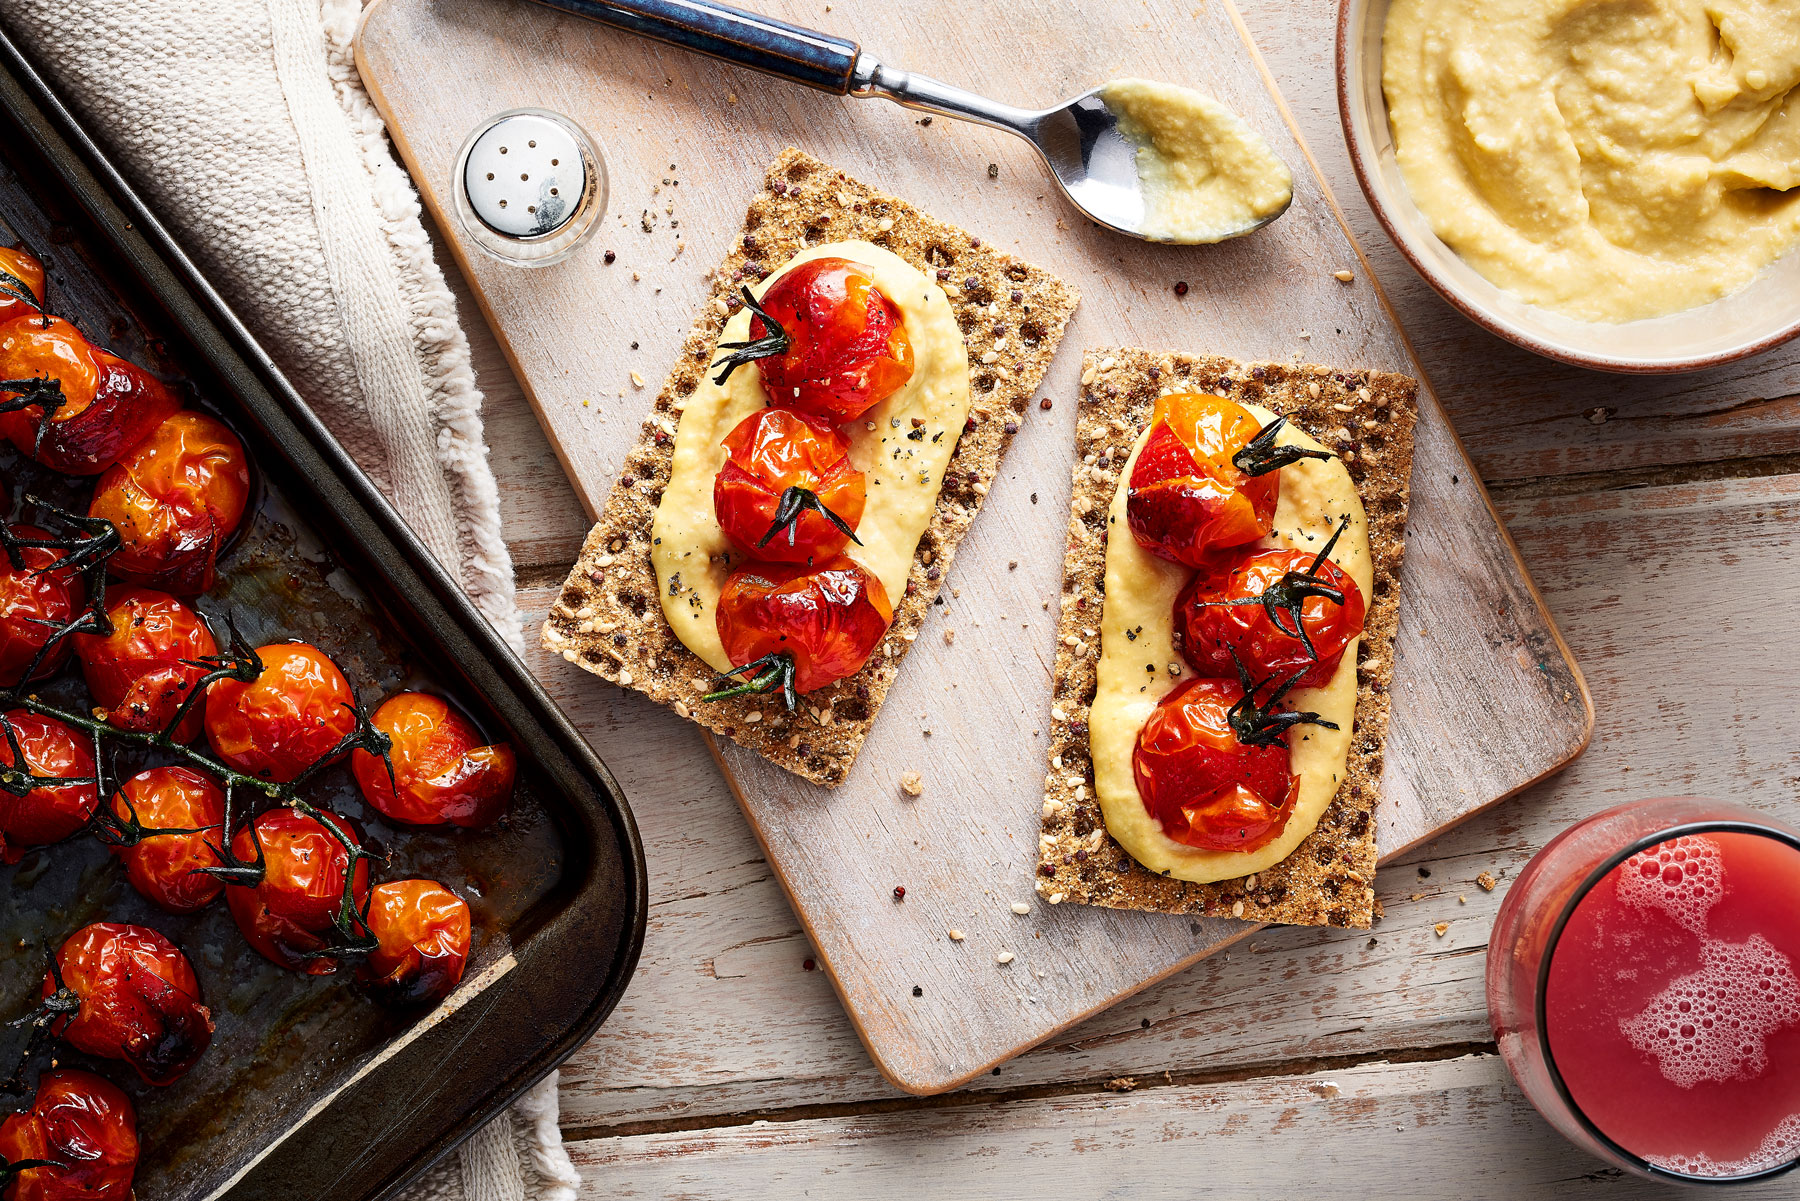 Ryvita with hummus and roasted cherry tomatoes